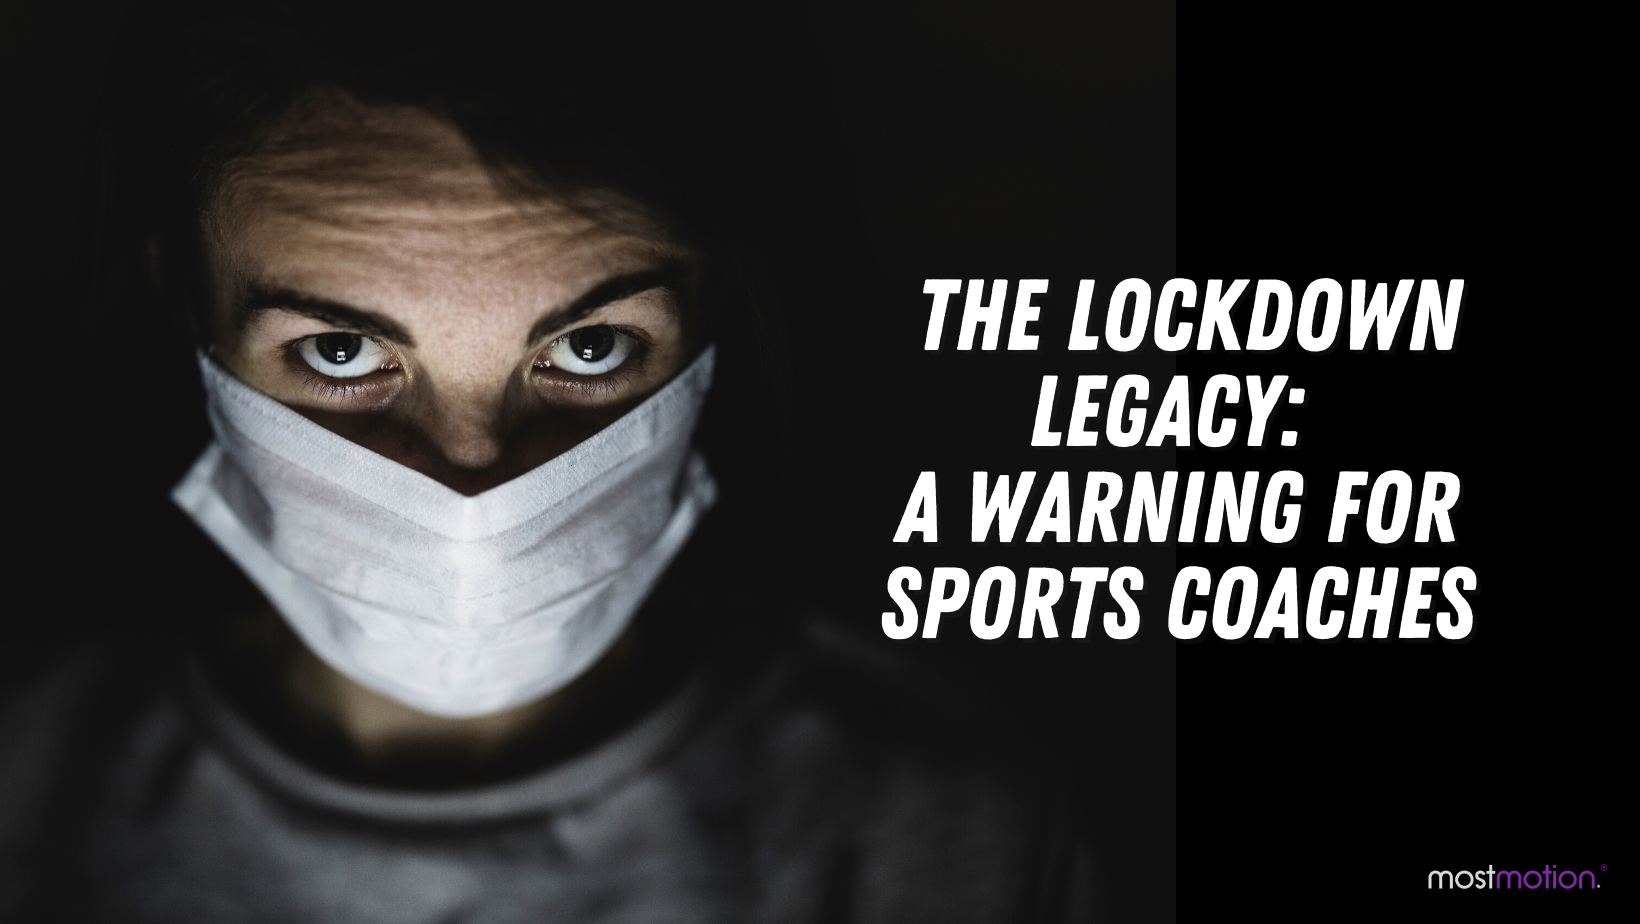 The Lockdown Legacy: A Warning for Sports Coaches